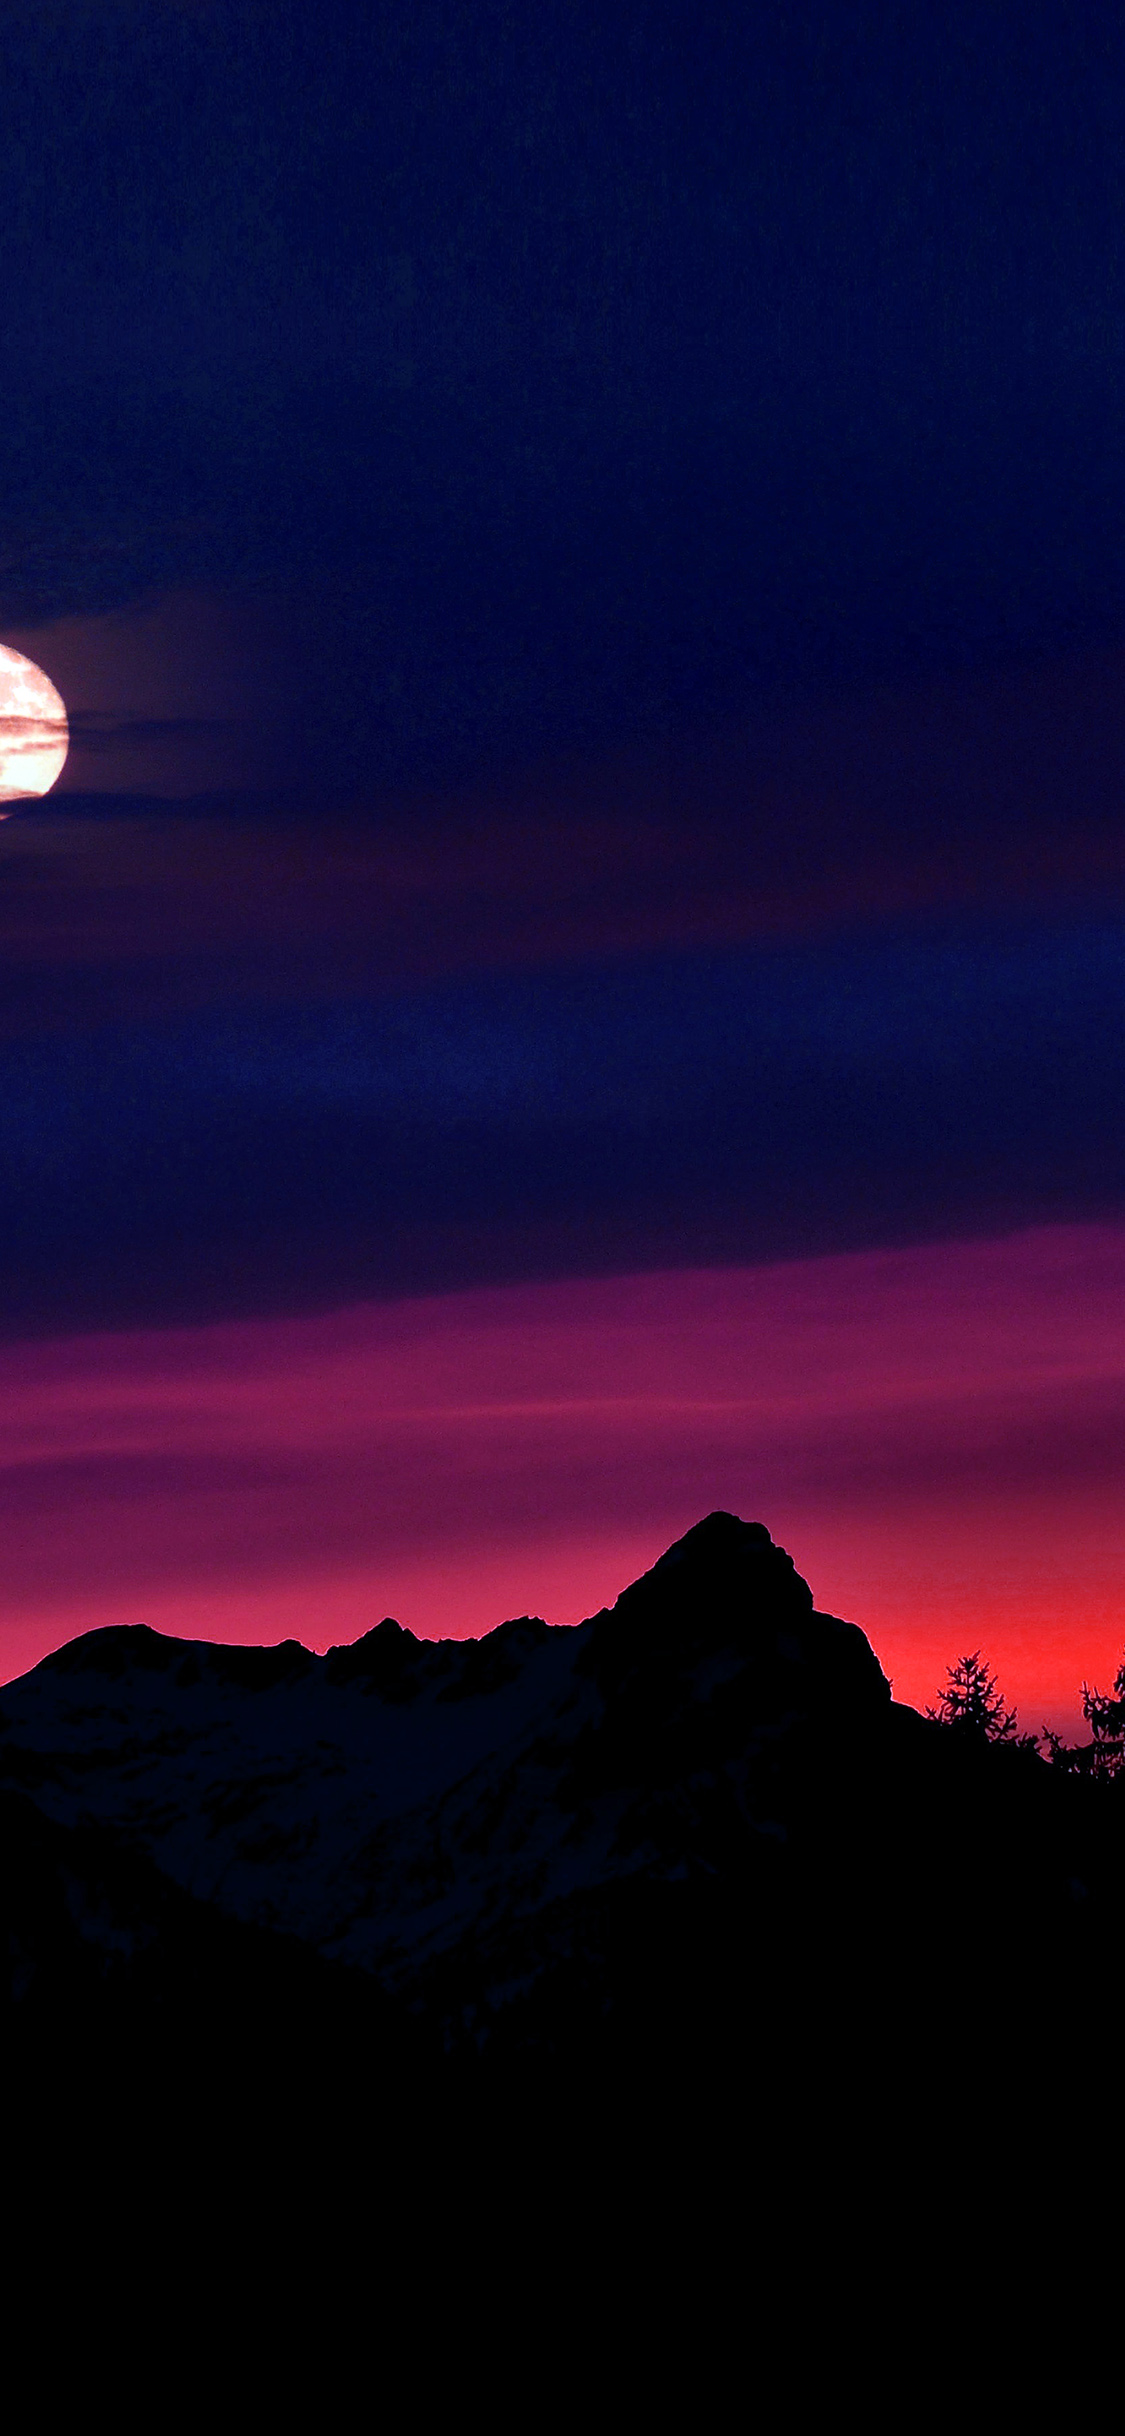 iPhonexpapers.com-Apple-iPhone-wallpaper-ni65-mountain-picks-night-sunset-sky-red-blue